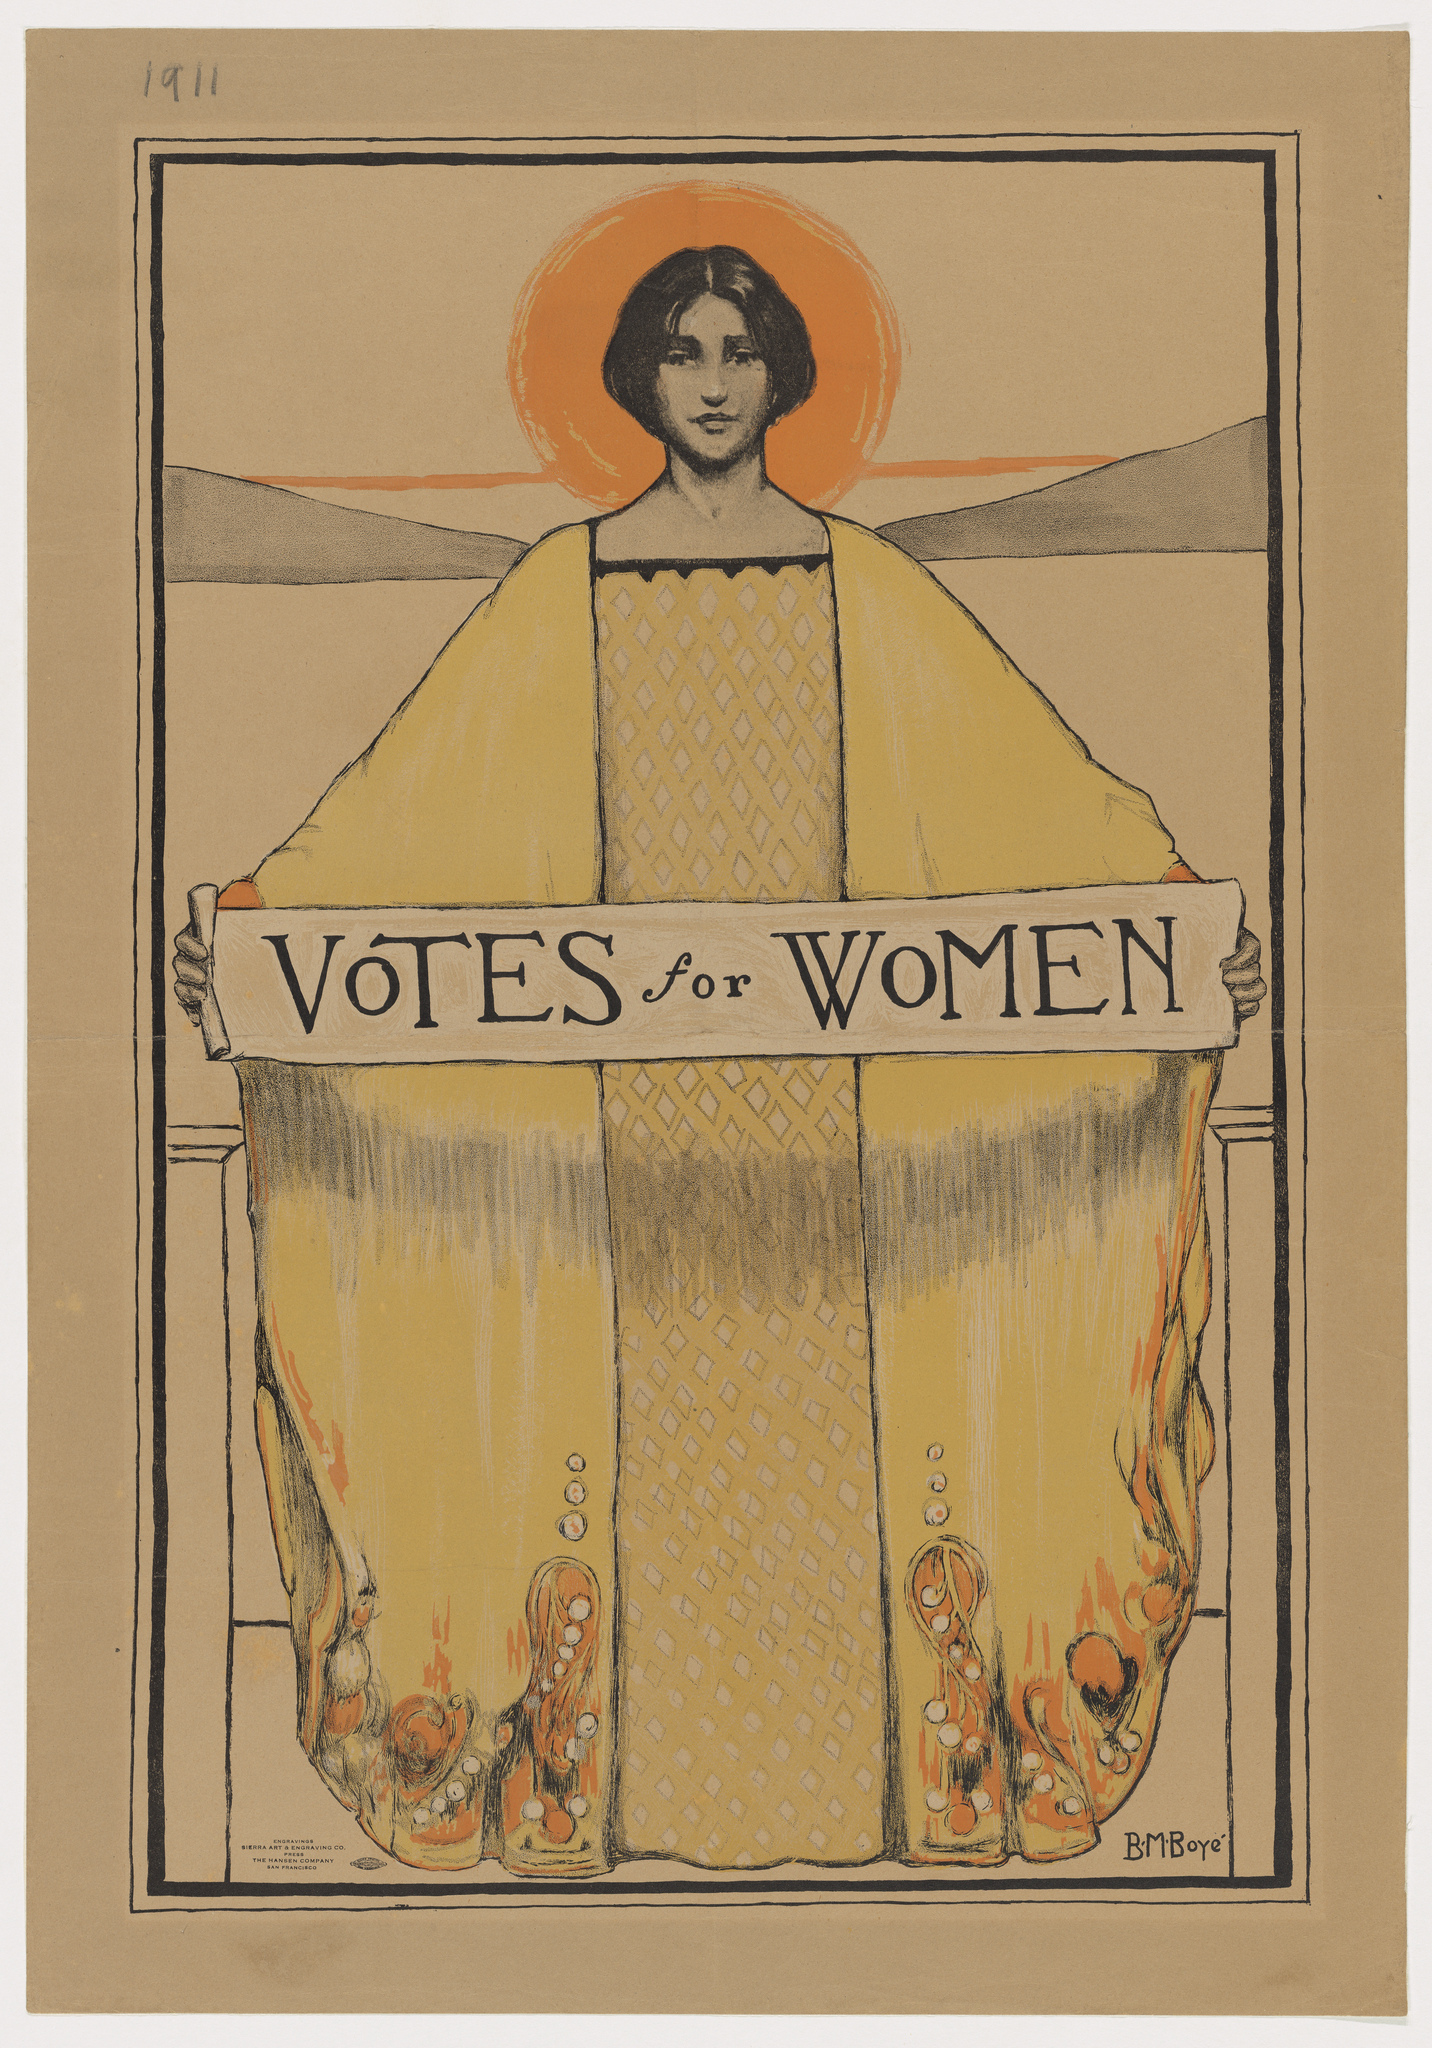 Votes for Women poster by Bertha M. Boye.